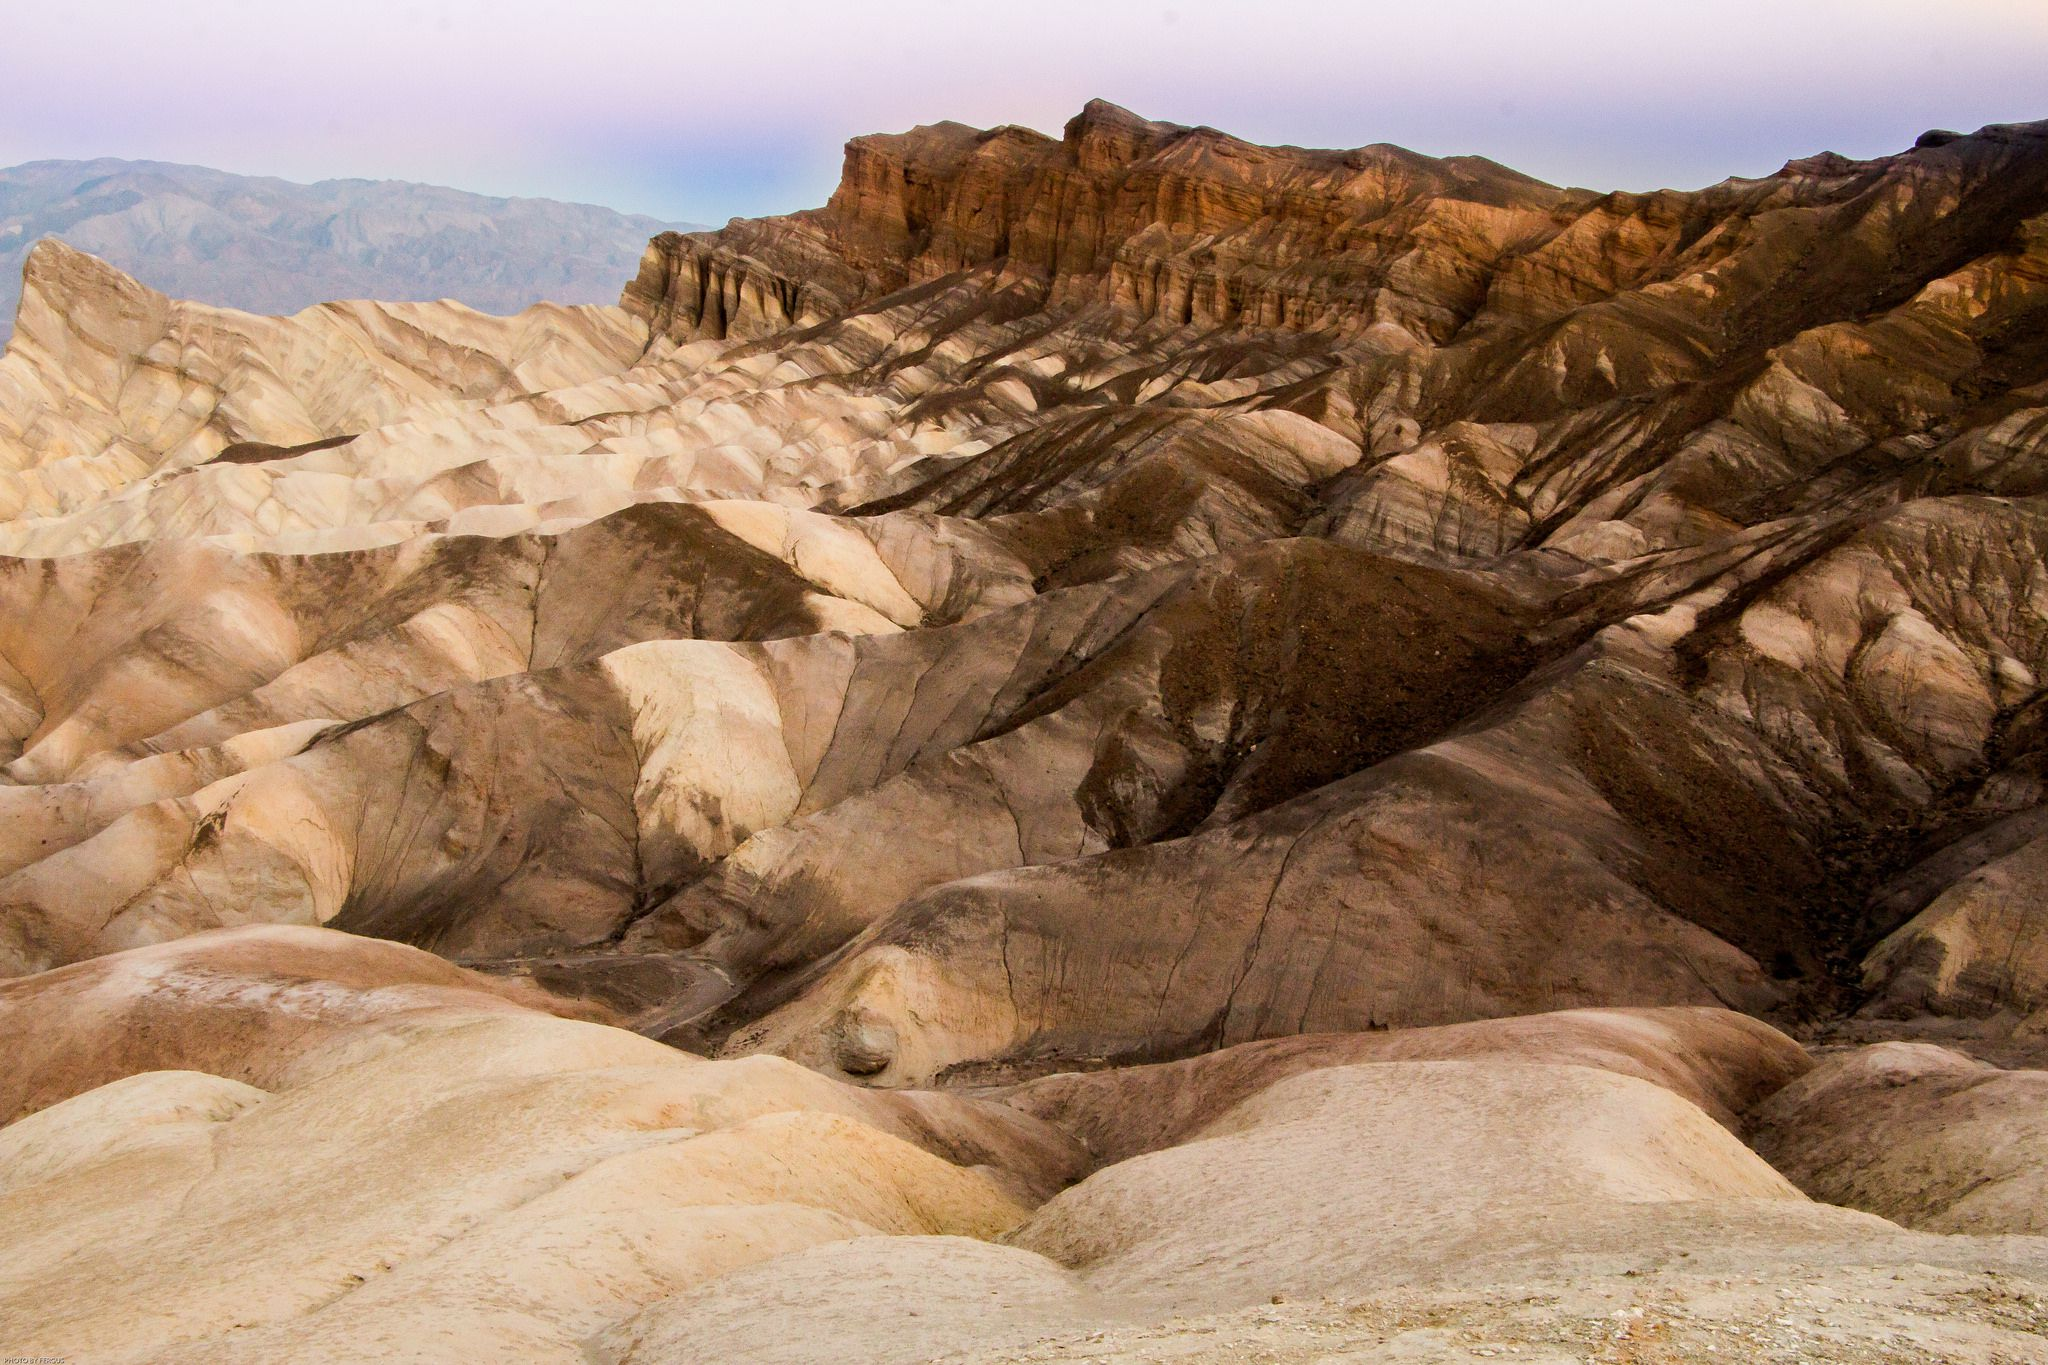 Death Valley National Park Visit: What You Should Know